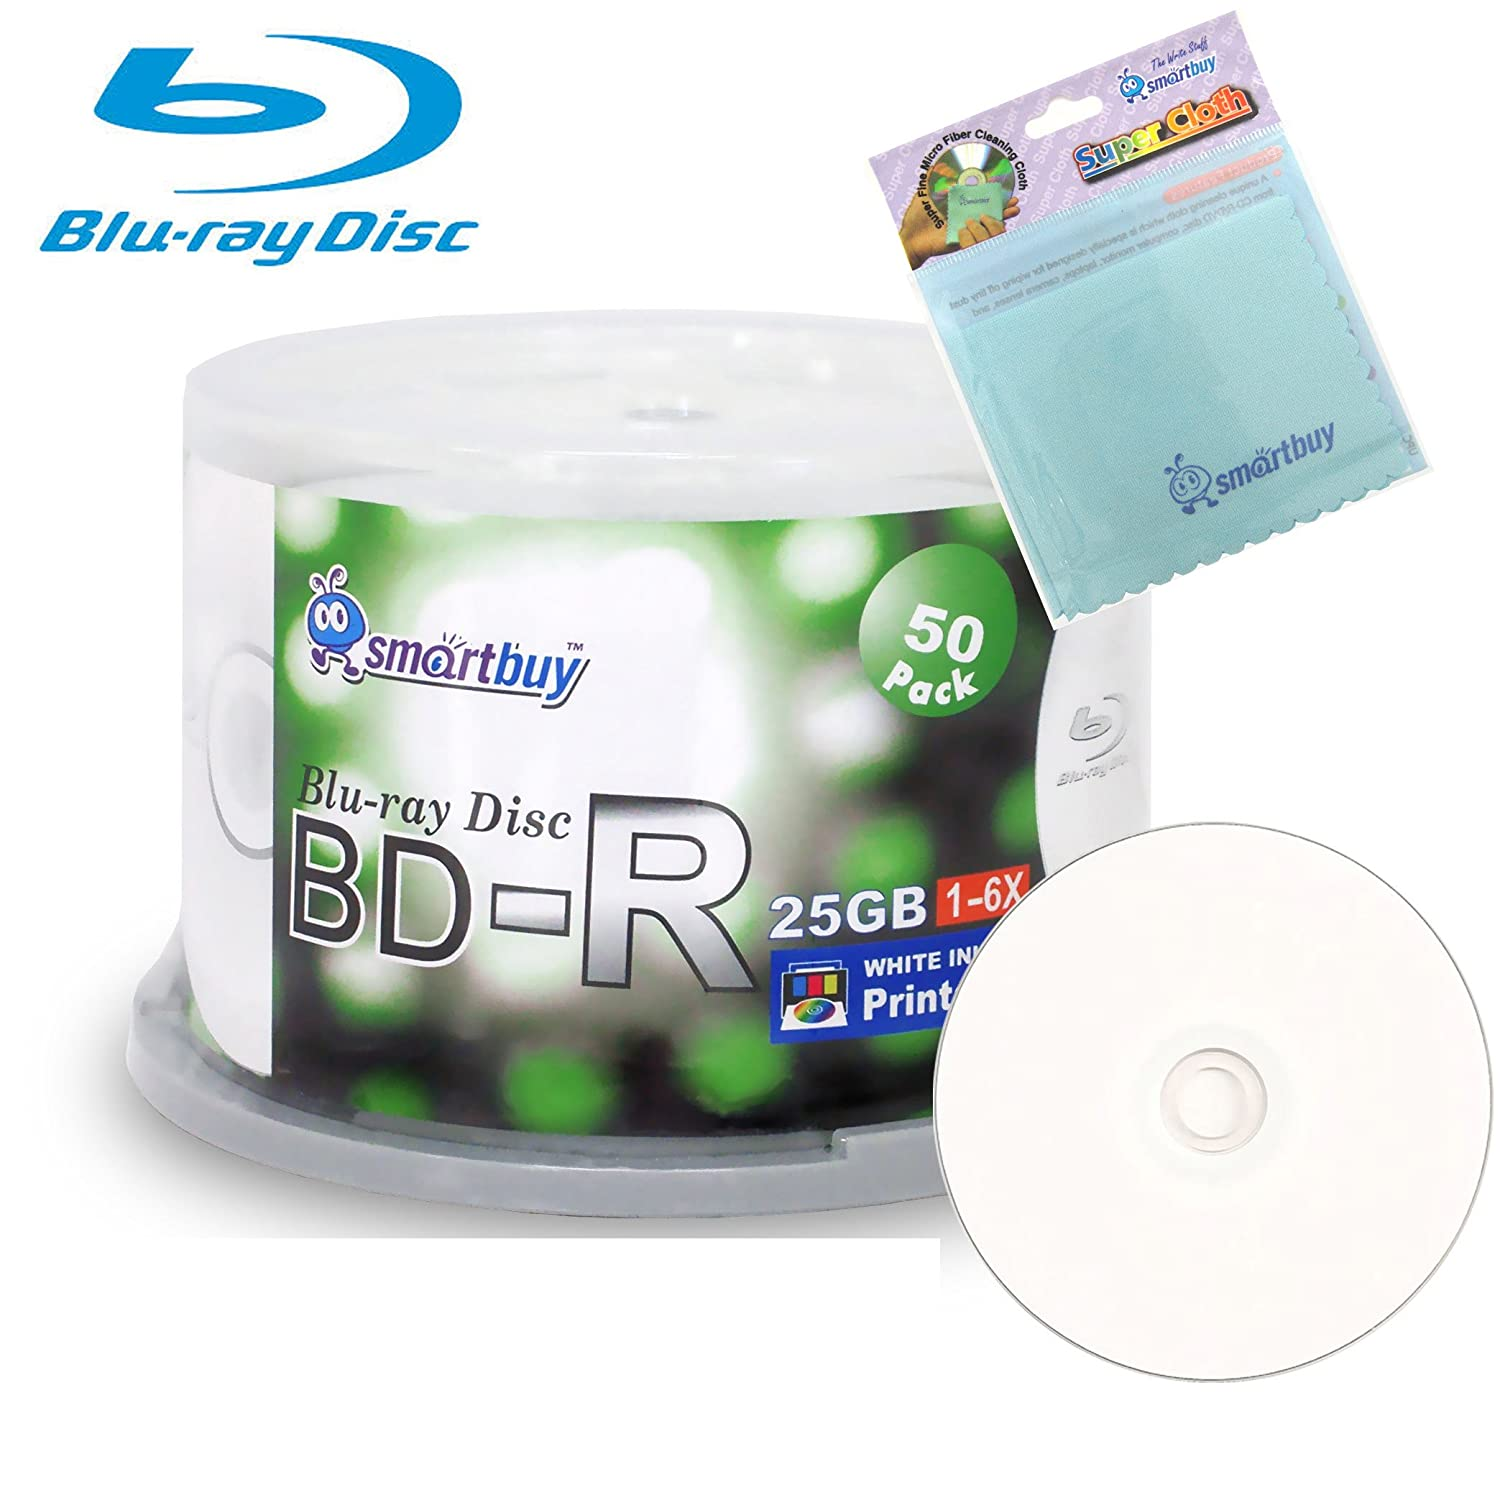 Smartbuy 50-disc 25GB 6x BD-R Blu-Ray White Inkjet Hub Printable Blank Media Disc + Free Micro Fiber Cloth Taiwan